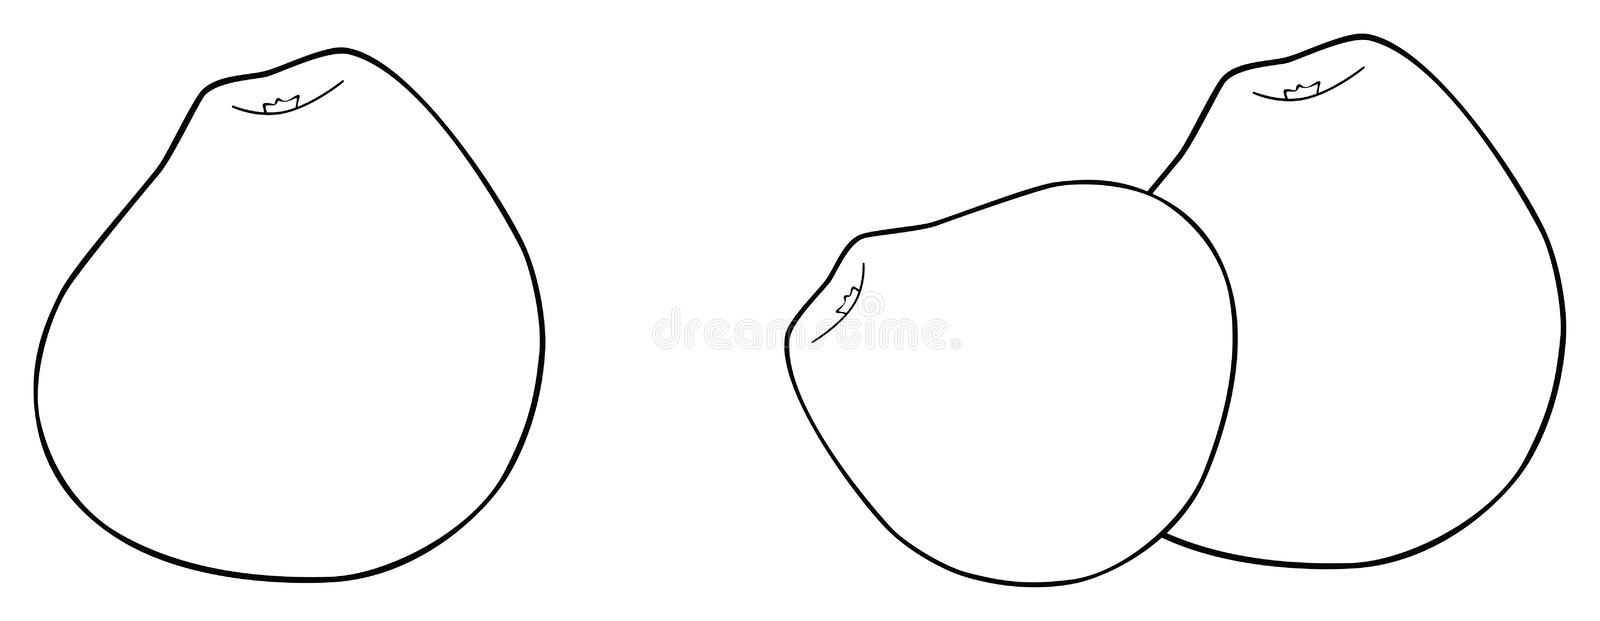 Delightful garden - One and two pear-shaped apples royalty free illustration